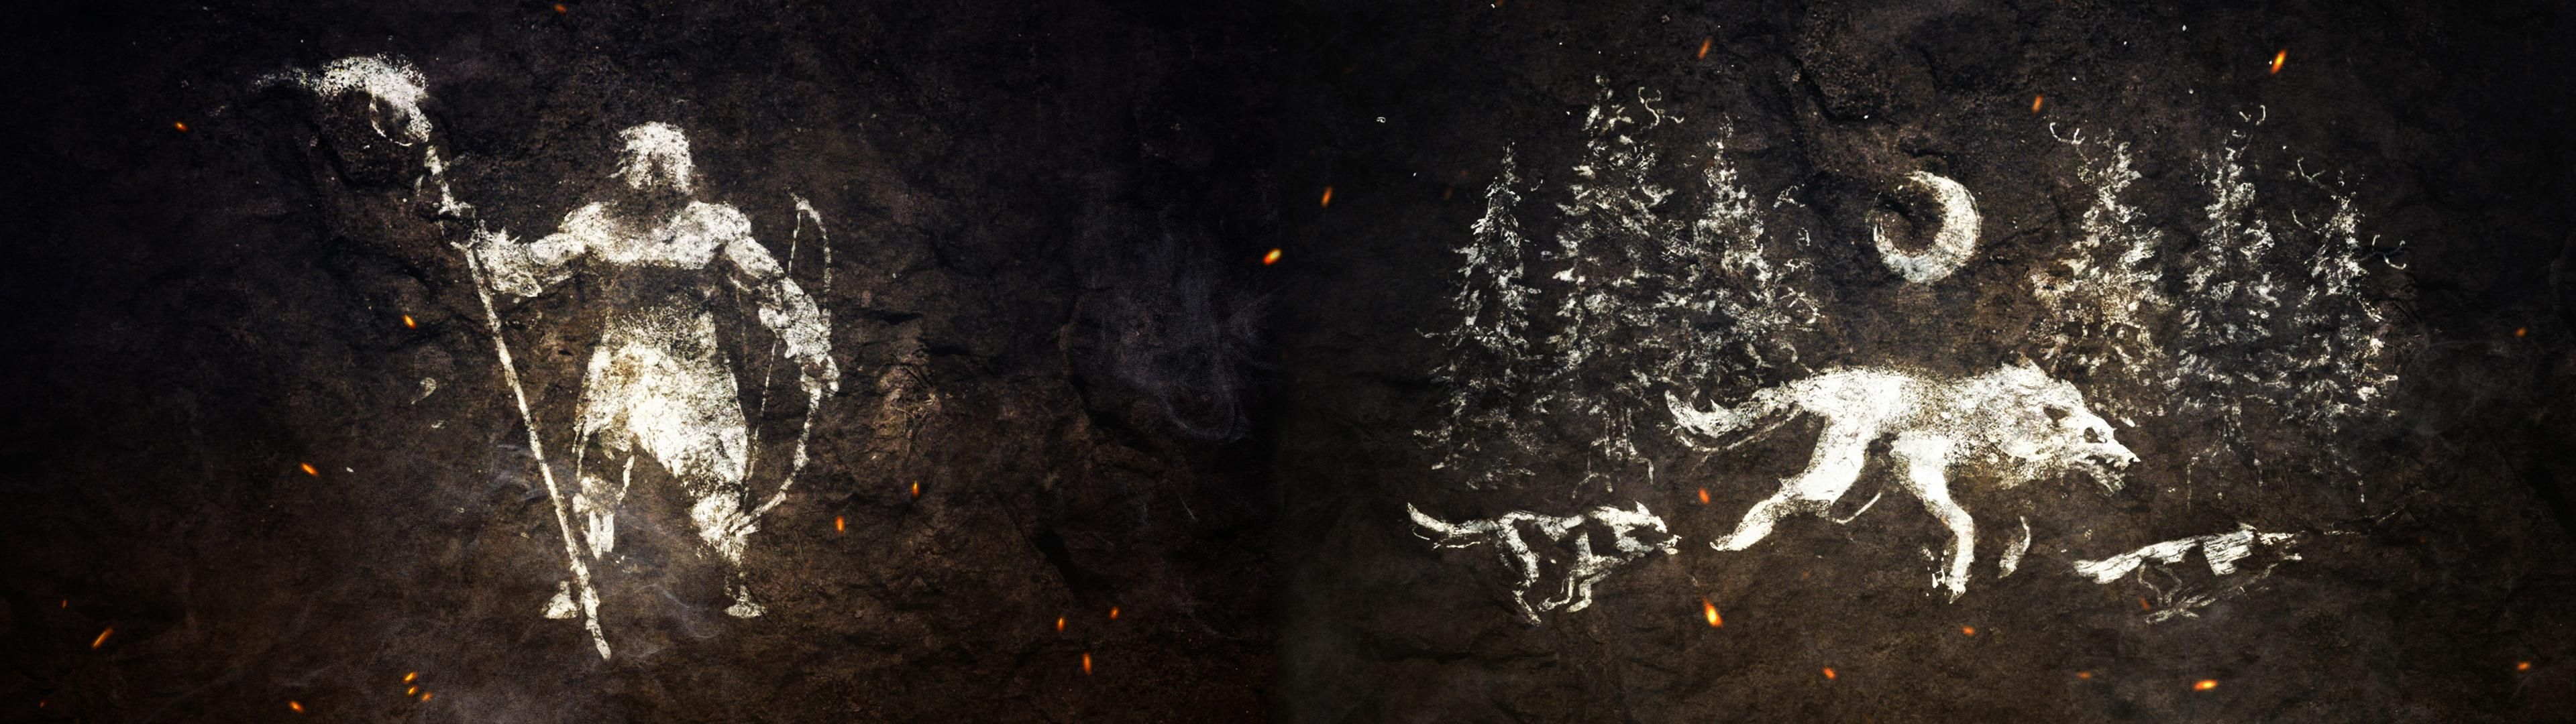 Made A Farcry Primal Dual Monitor Wallpaper 3840x1080 Wallpaper